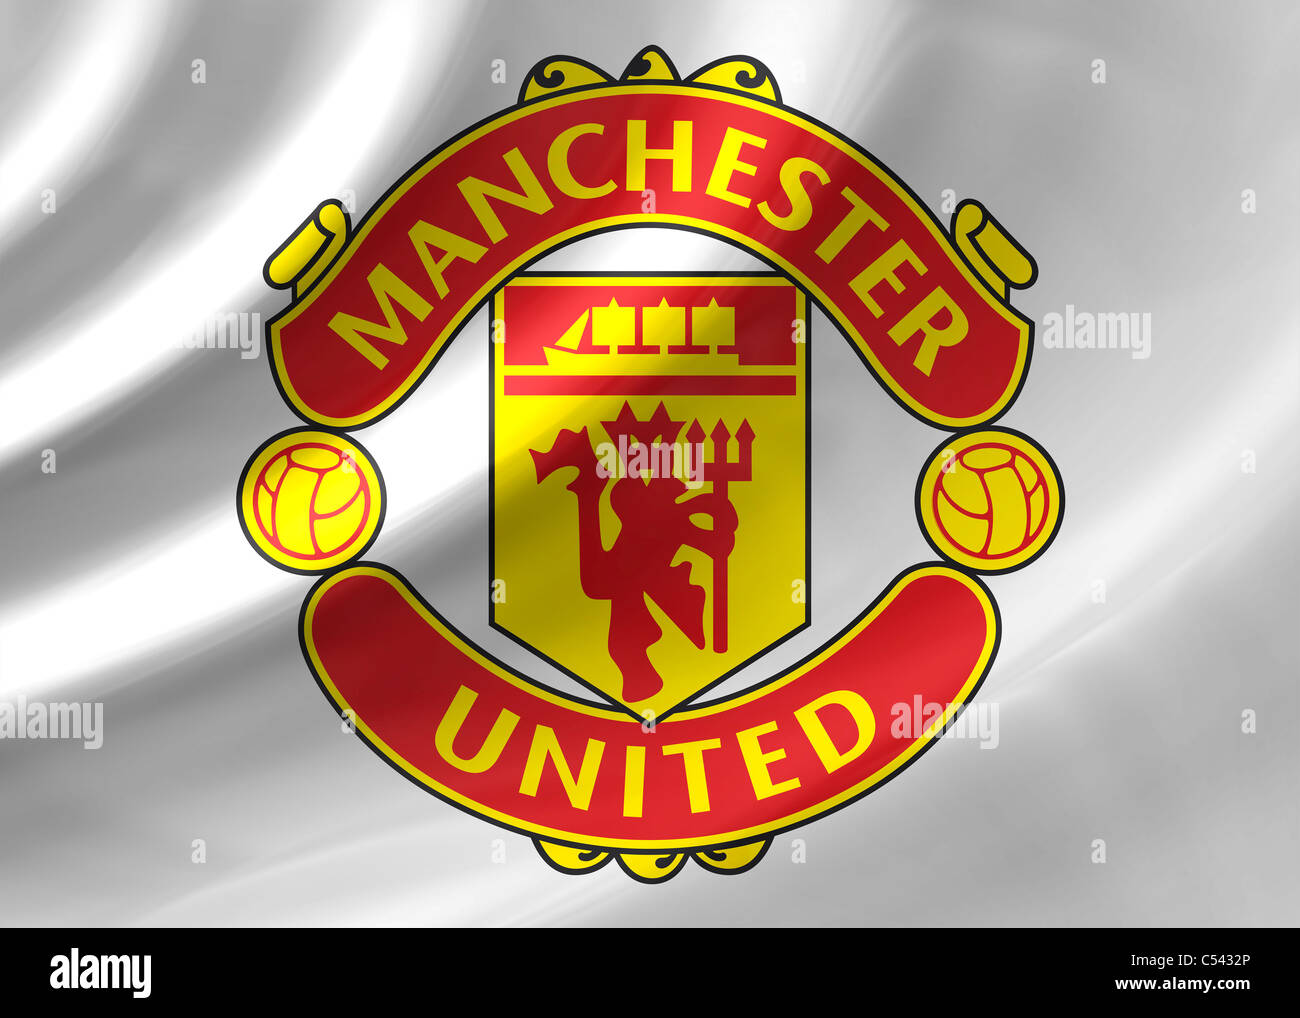 Manchester united flag logo symbol icon stock photo 37584254 alamy manchester united flag logo symbol icon voltagebd Image collections